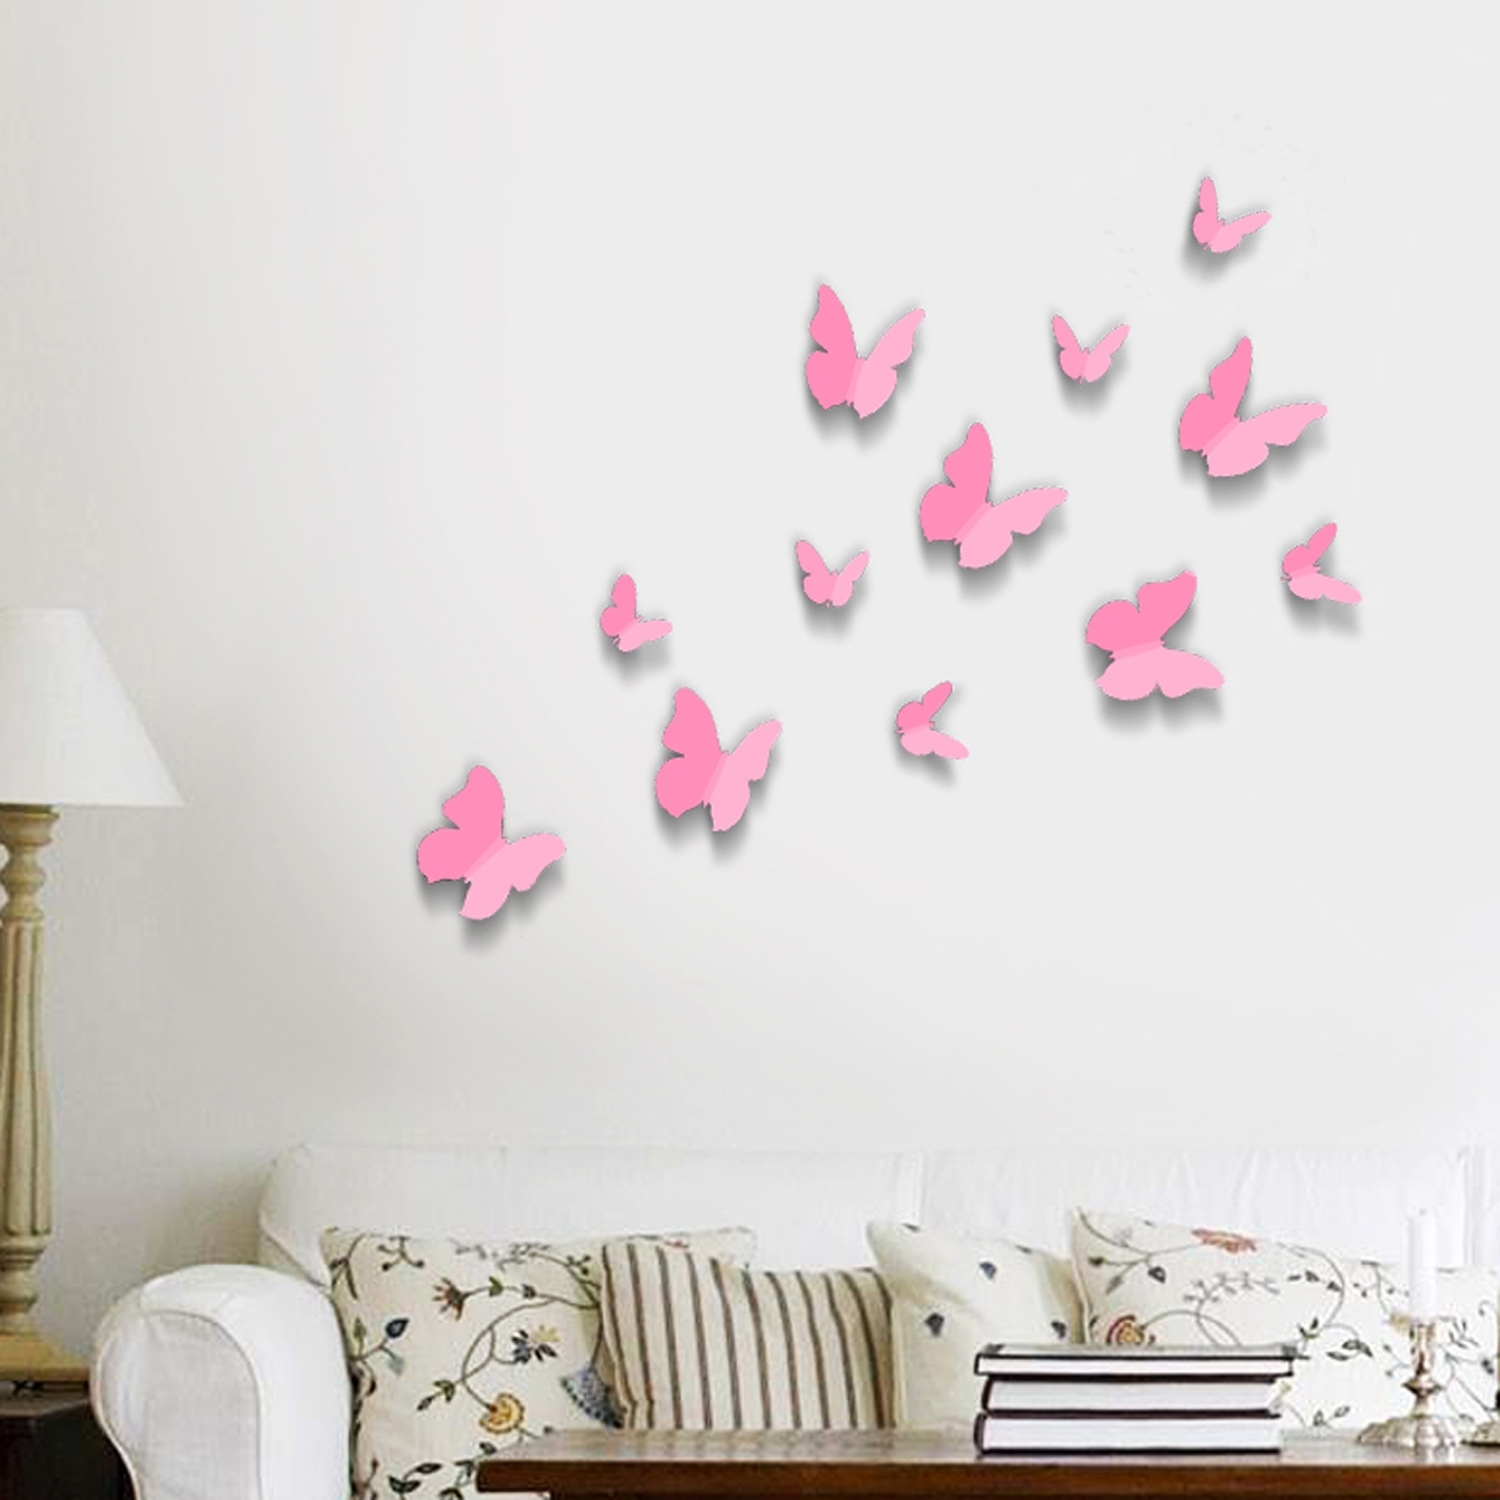 Pink 3d Butterflies Wall Art Stickers For Recent Butterfly Wall Art (View 10 of 15)